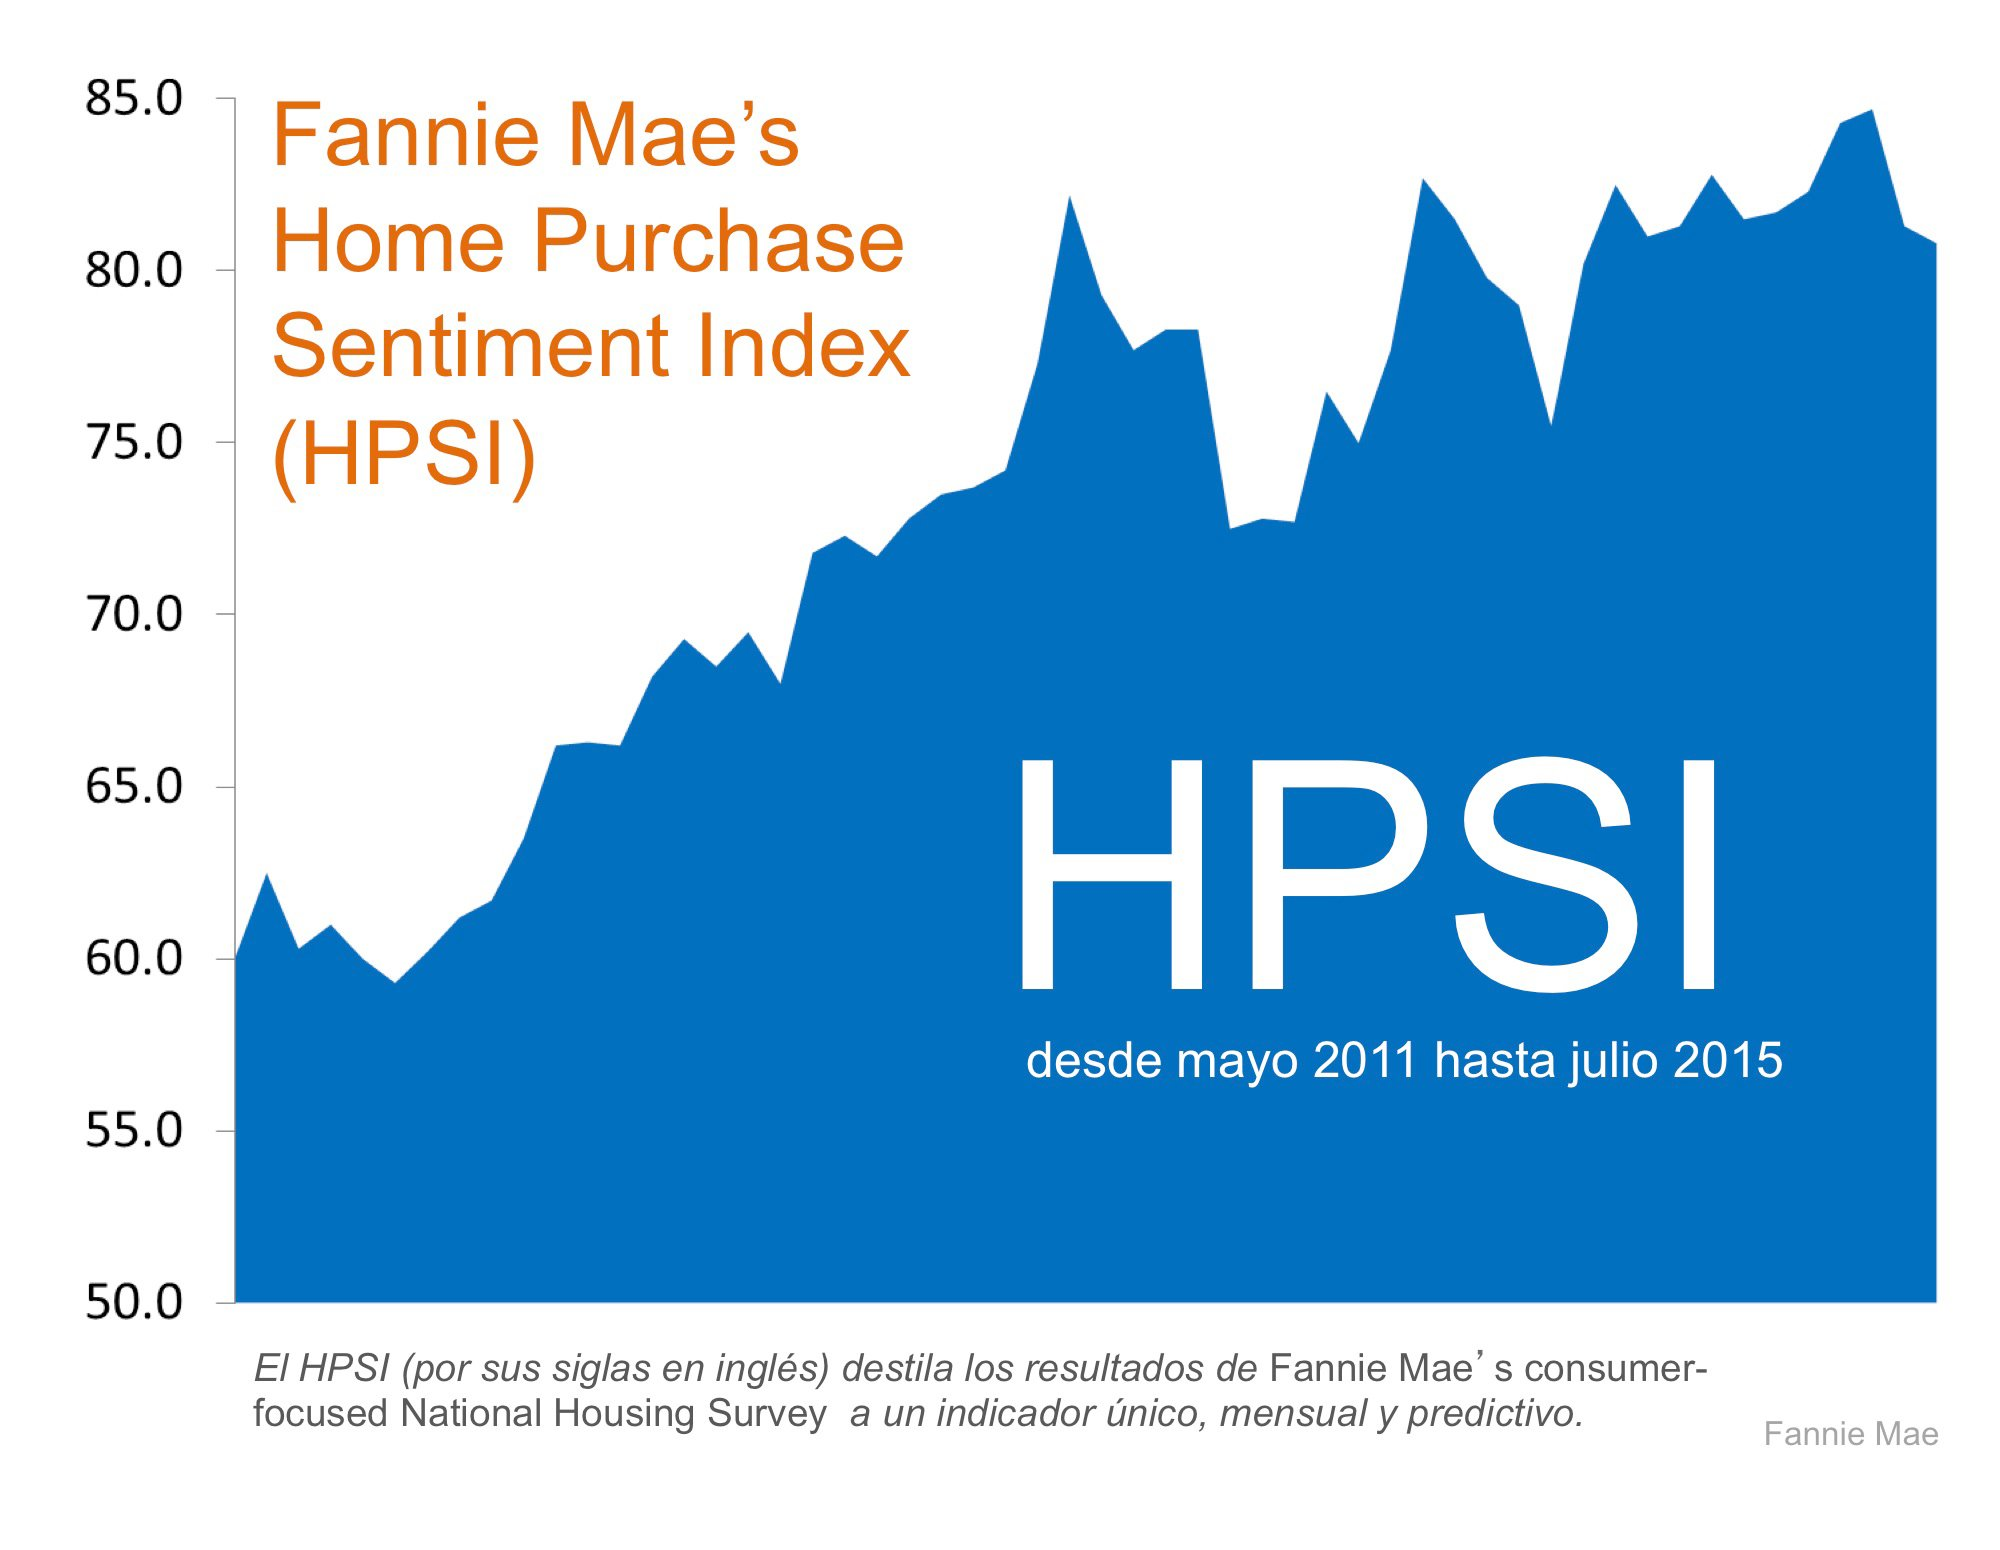 Home Purchase Sentiment Index de Fannie Mae | Simplifying The Market